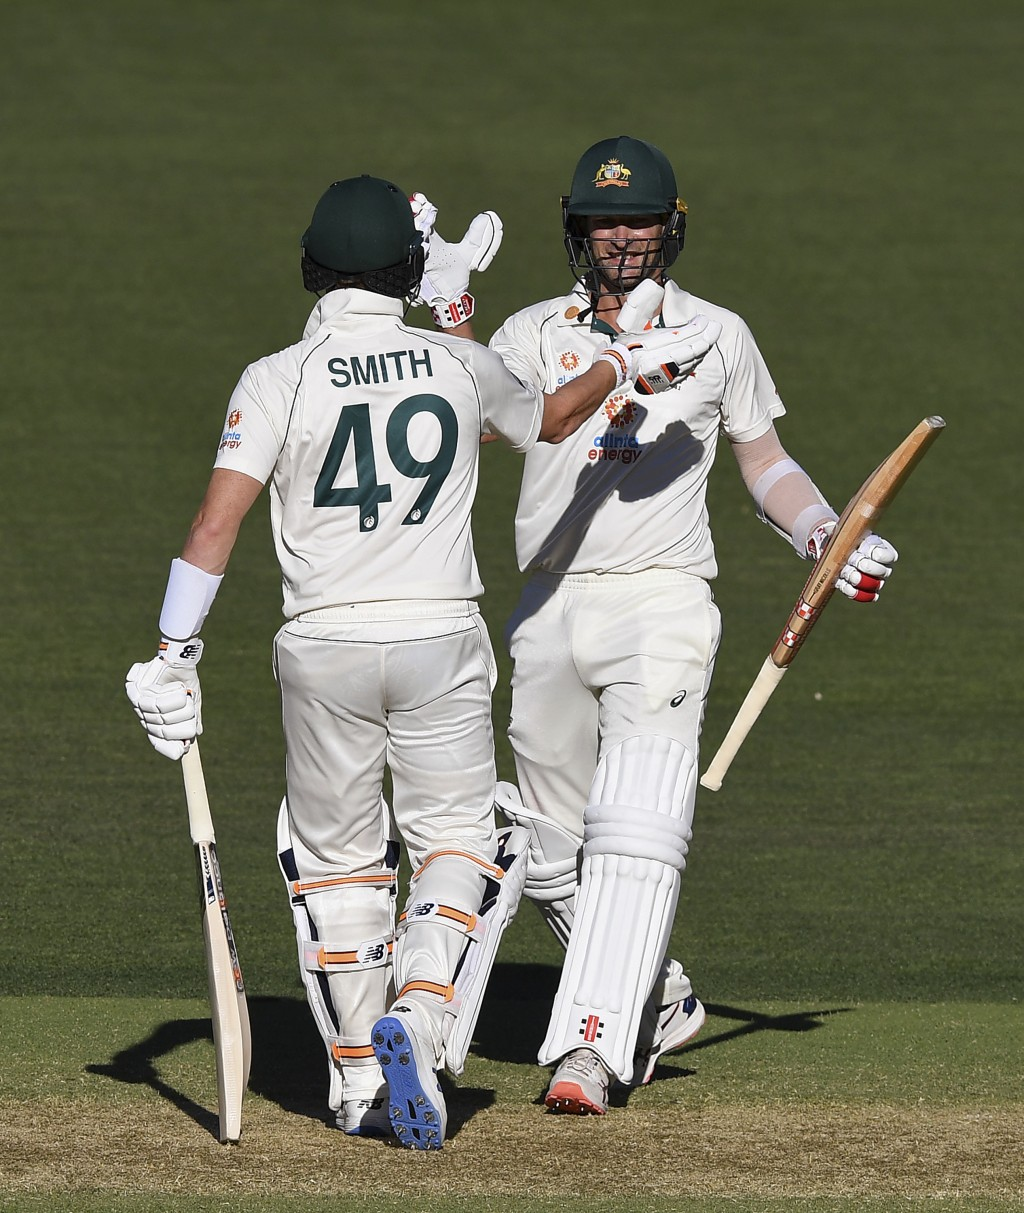 Australia's Joe Burns, right, is congratulated by teammate Steve Smith after hitting a 6 to win their cricket test match against India on the third da...